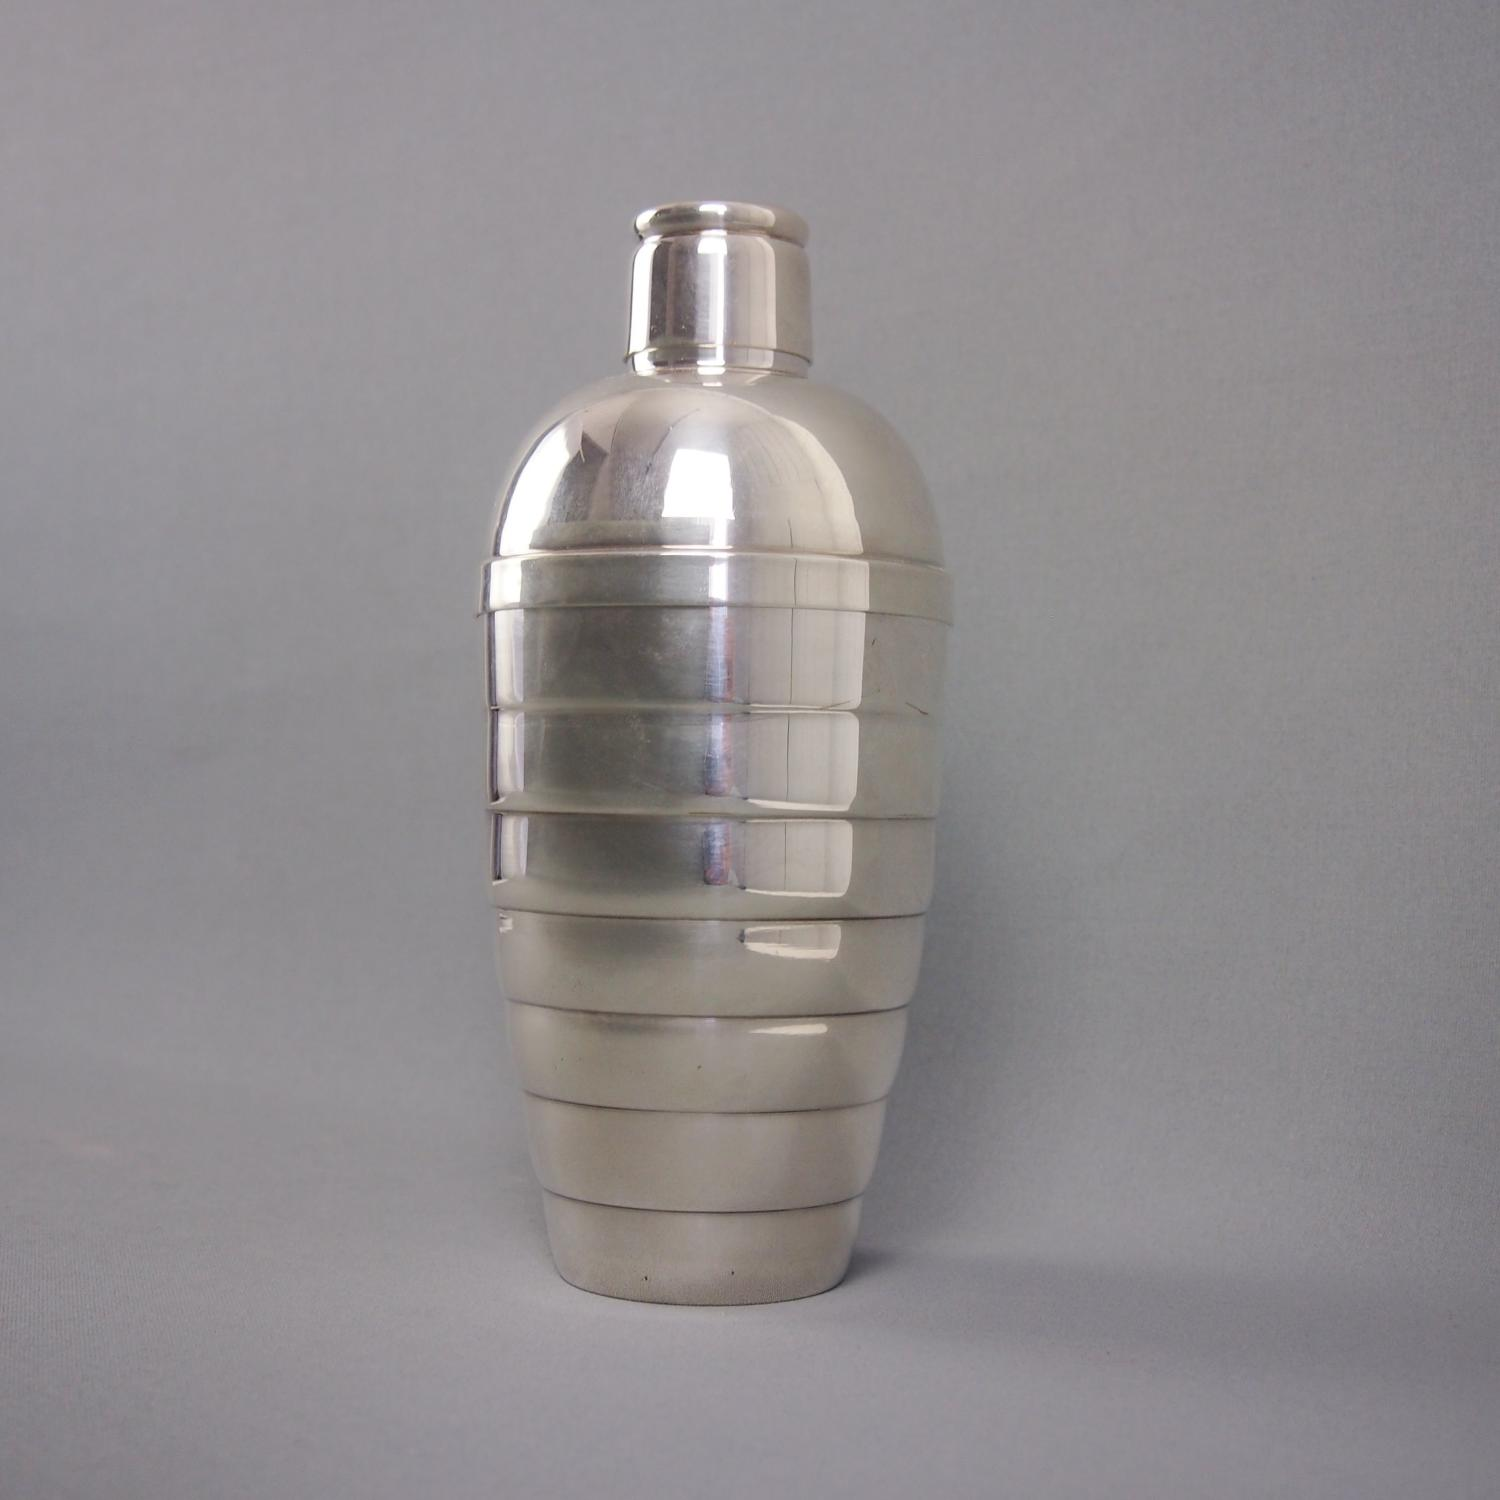 Silver Plated Ridged Vintage Cocktail Shaker C1940s